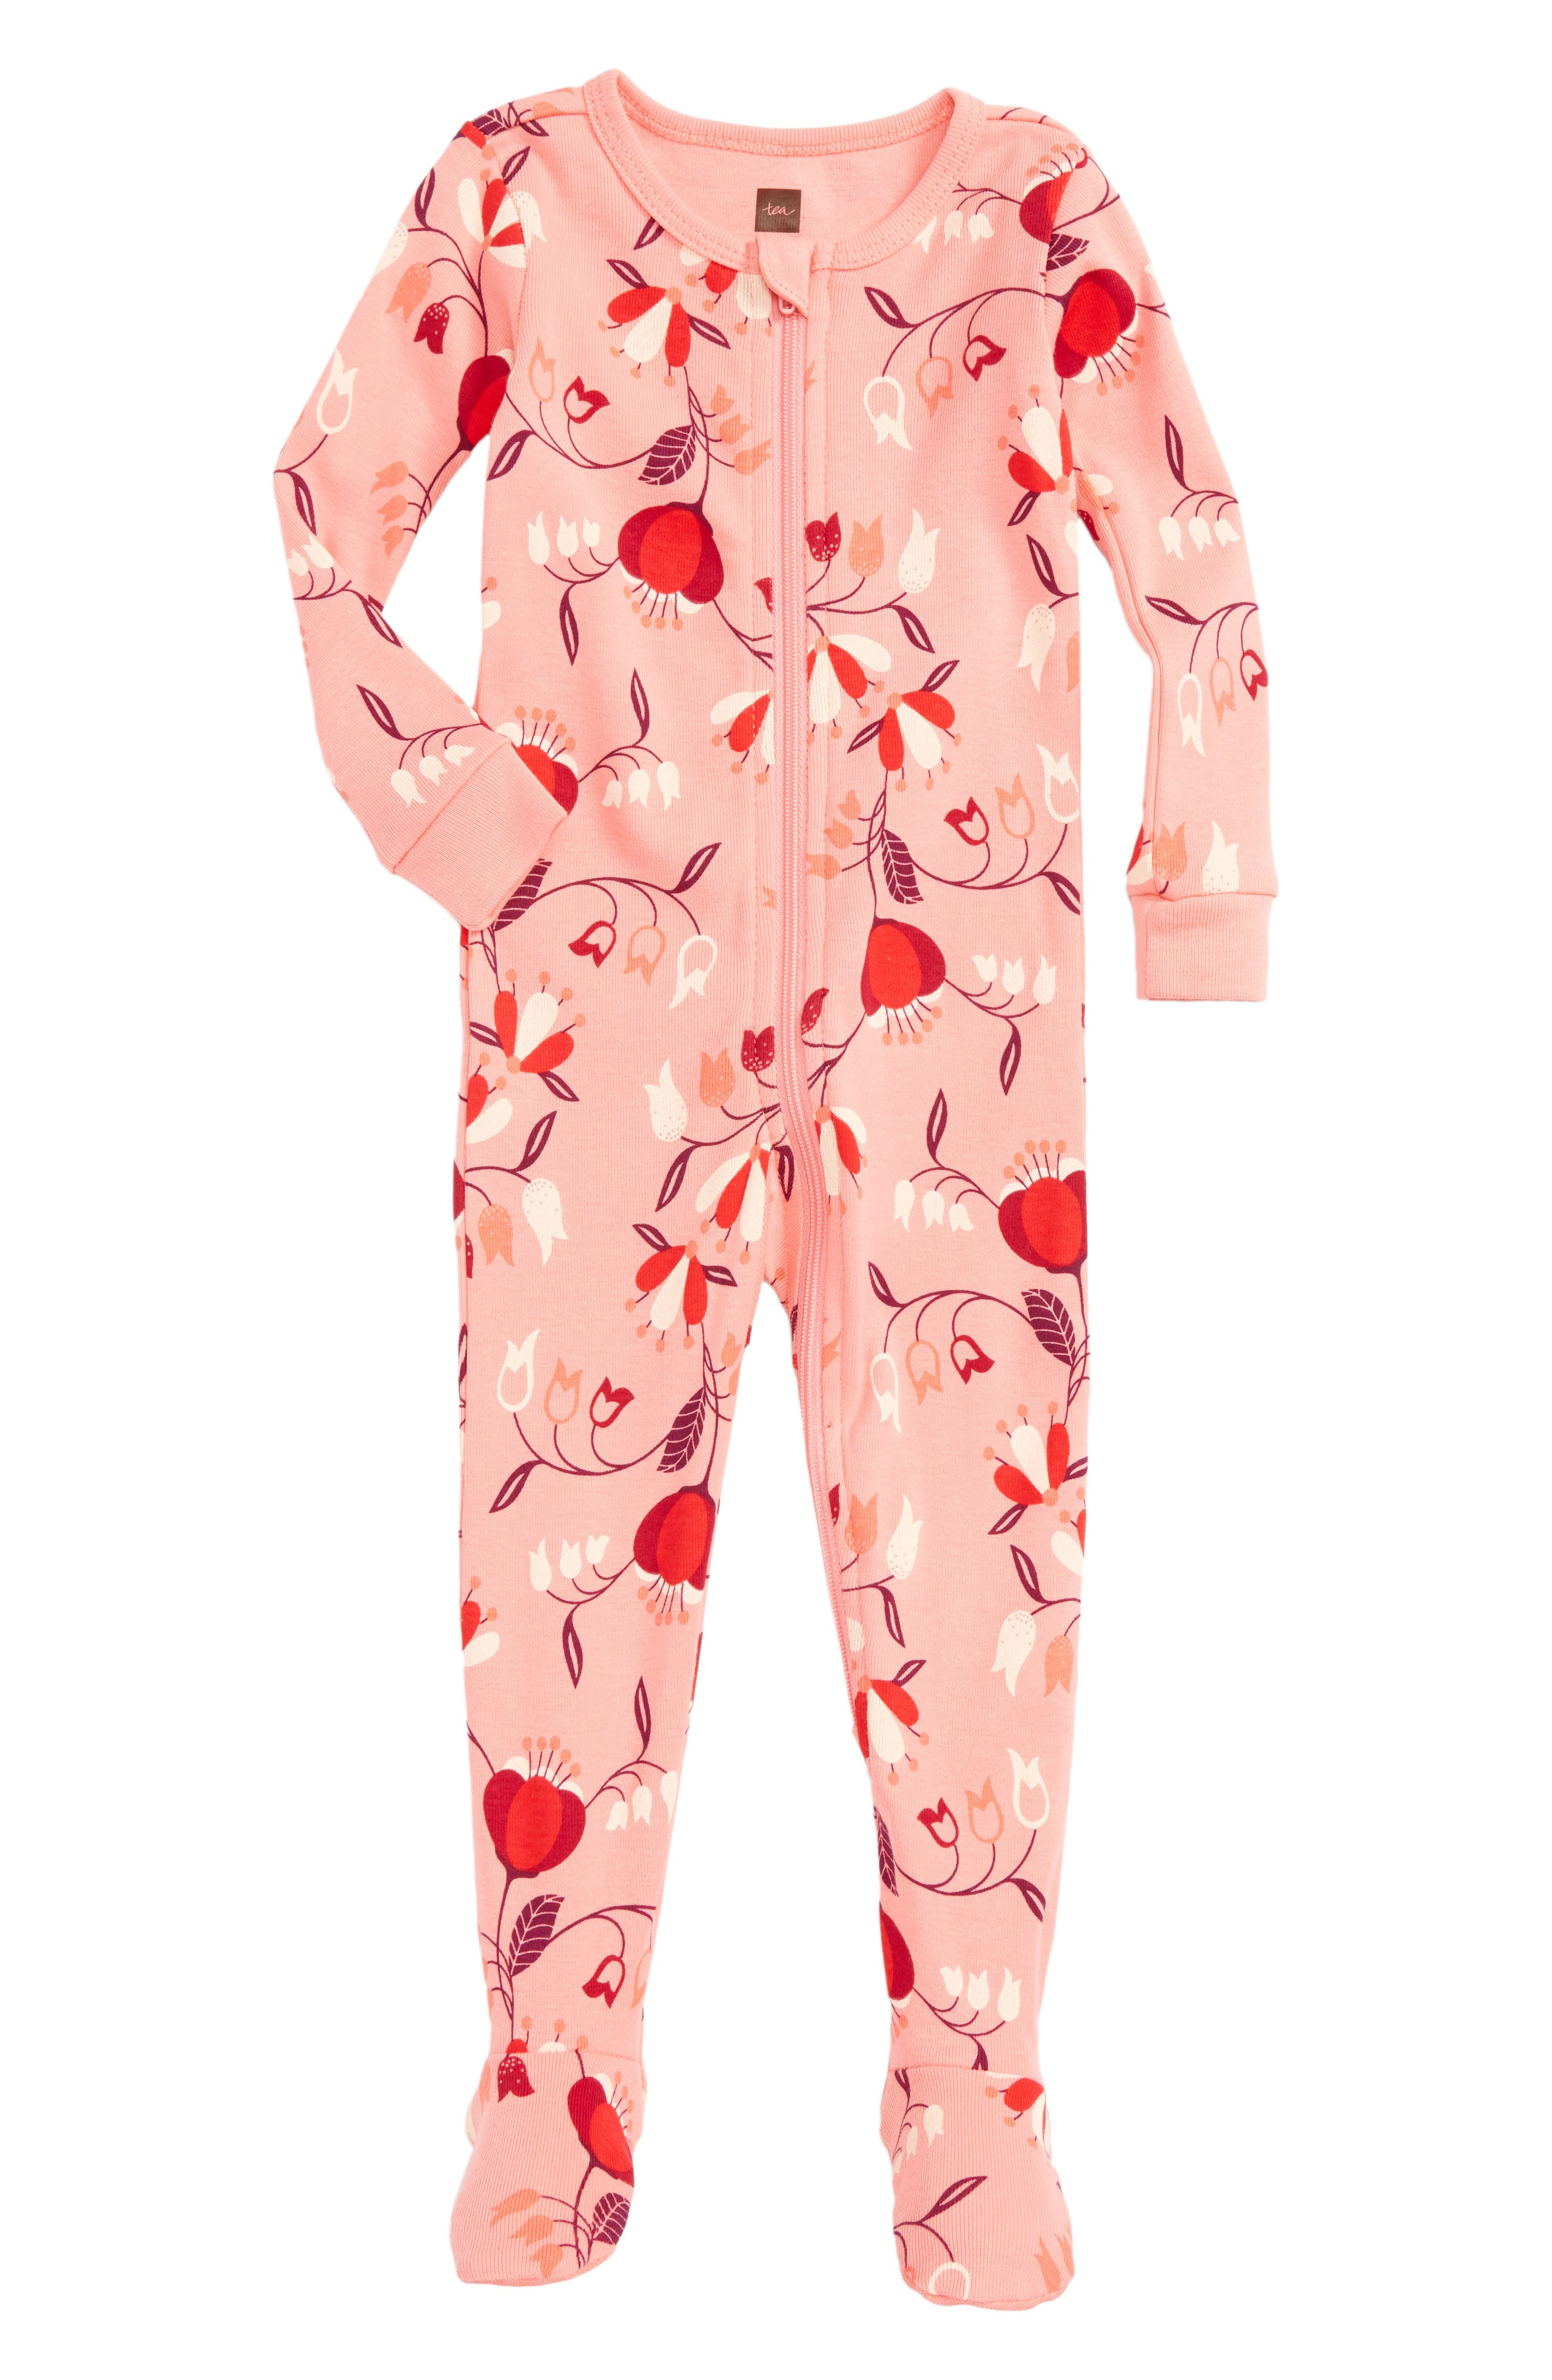 Caer Fitted One-Piece Pajamas,                             Main thumbnail 1, color,                             955